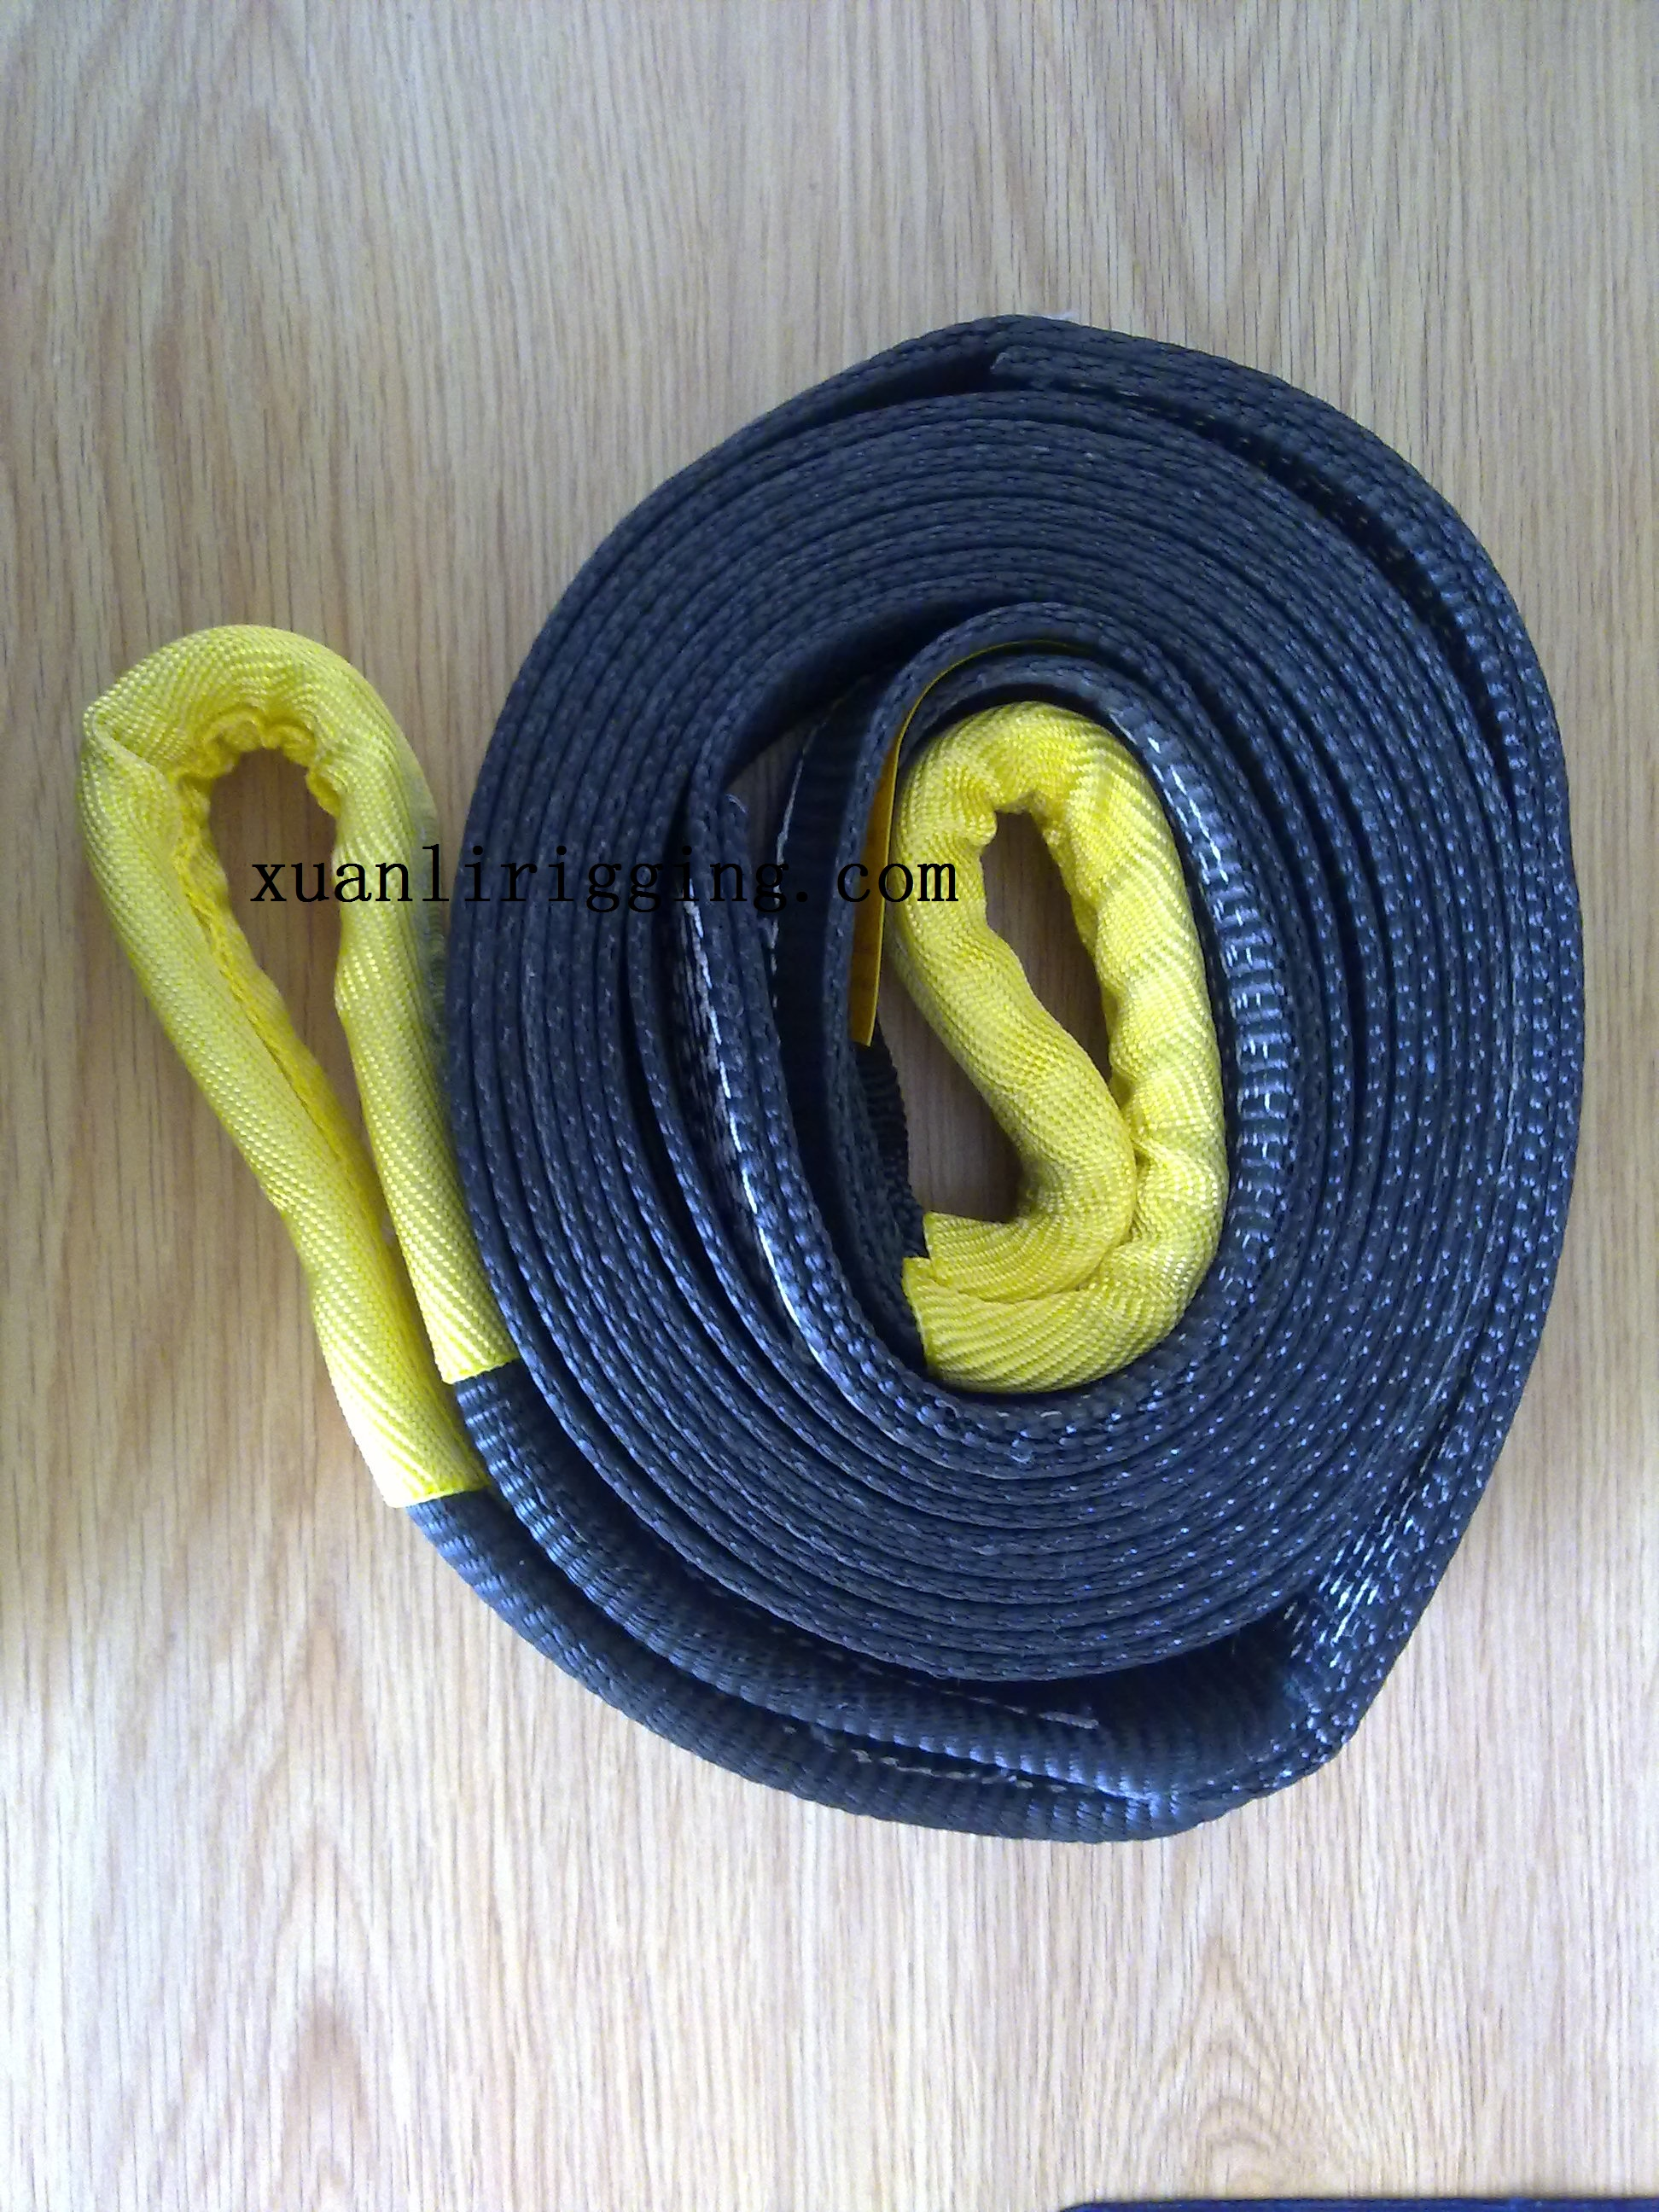 4WD snatch strap offroad recovery strap truck tow strap